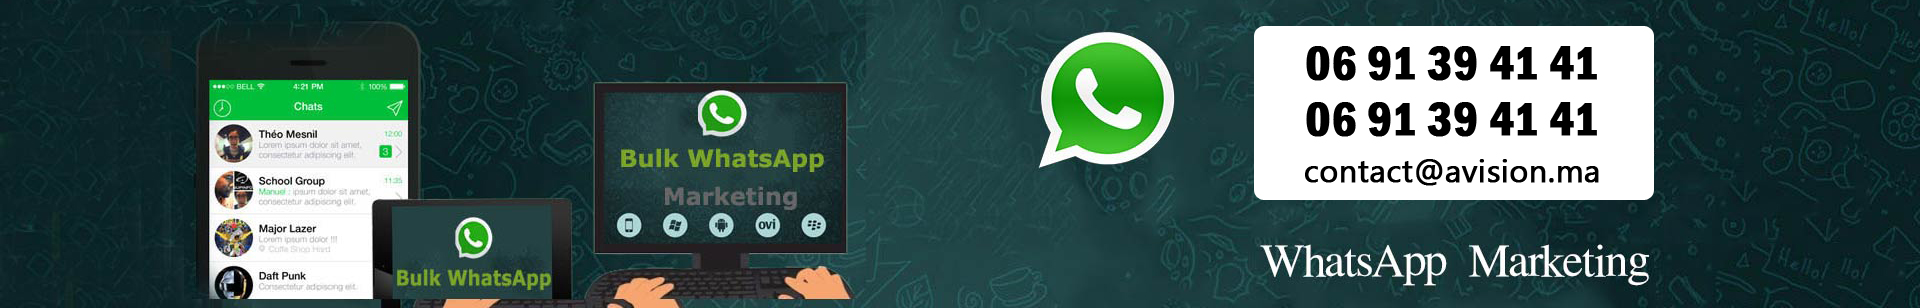 whatsapp Marketing rabat